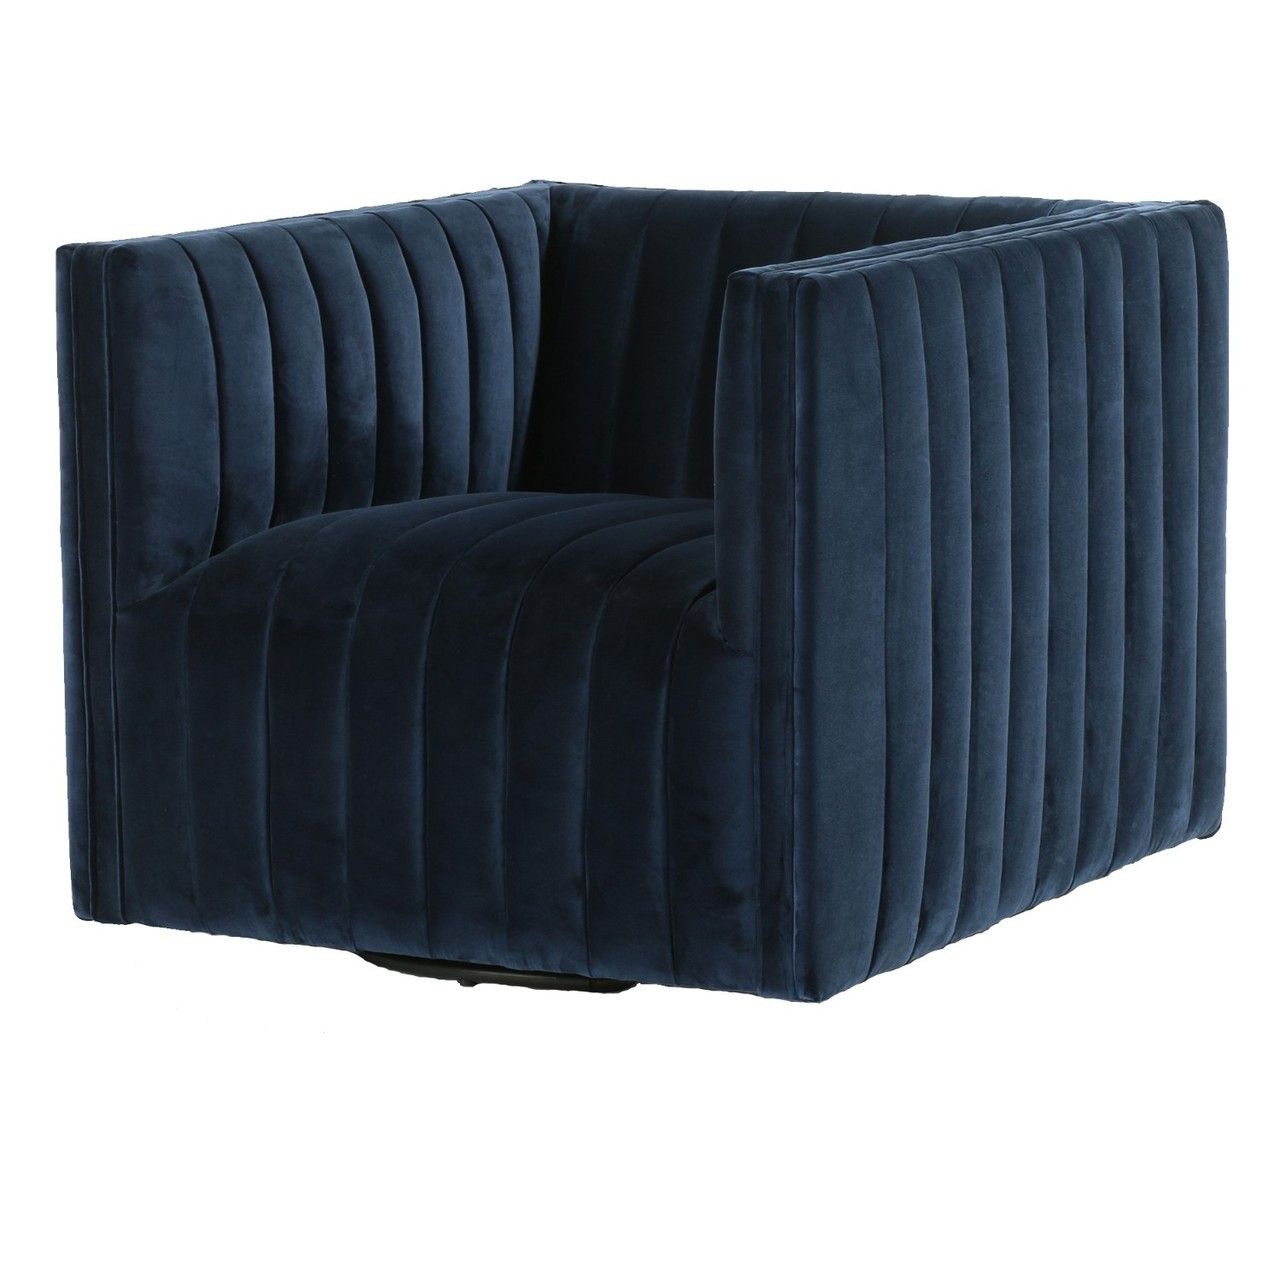 swivel chair definition revolving specification augustine channel tufted navy velvet zin home fourhands